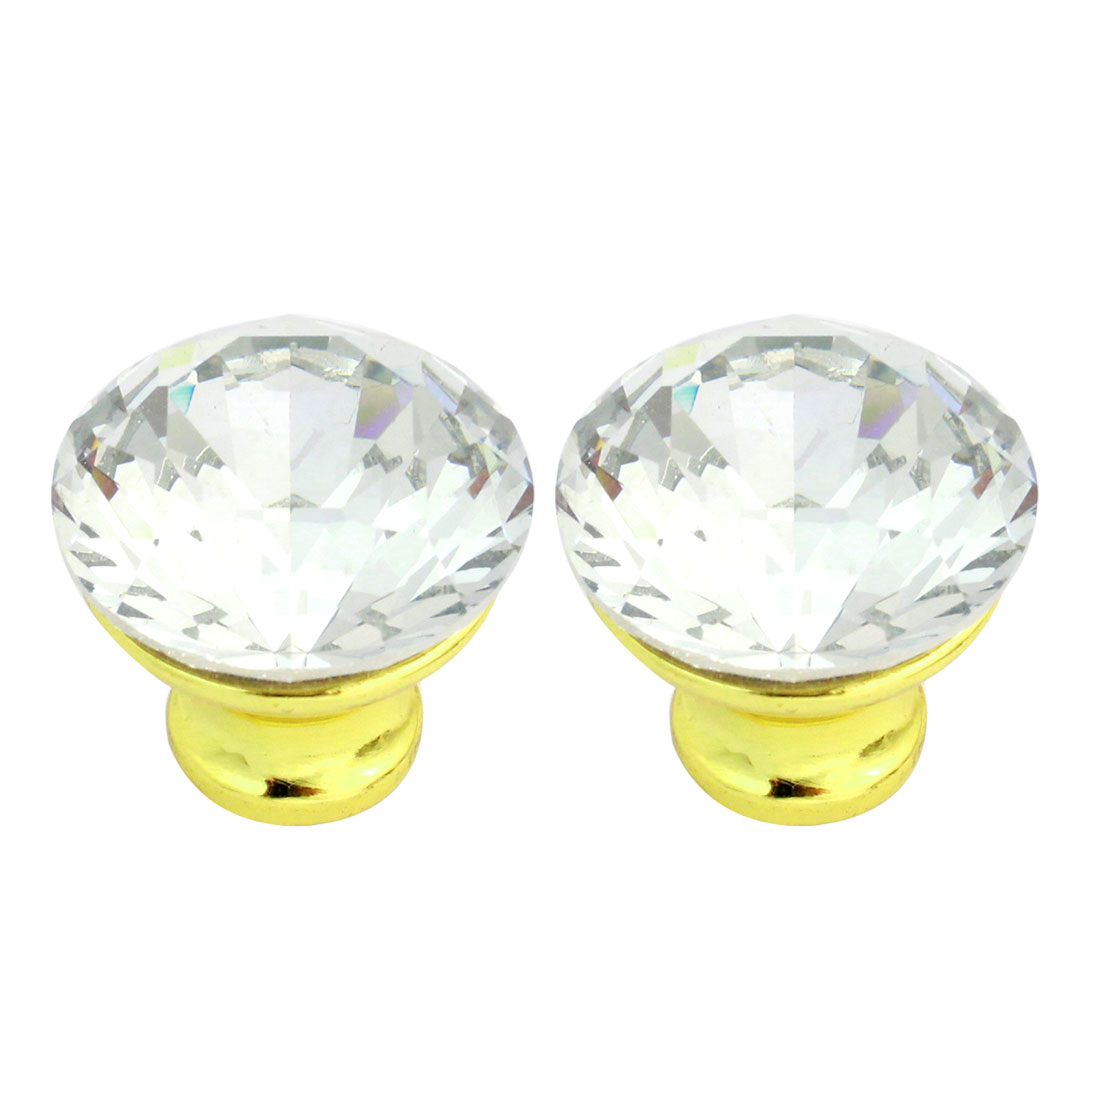 2pcs 30mm Sparkle Plastic Crystal Cabinet Wardrobe Door Knob Pull Handle